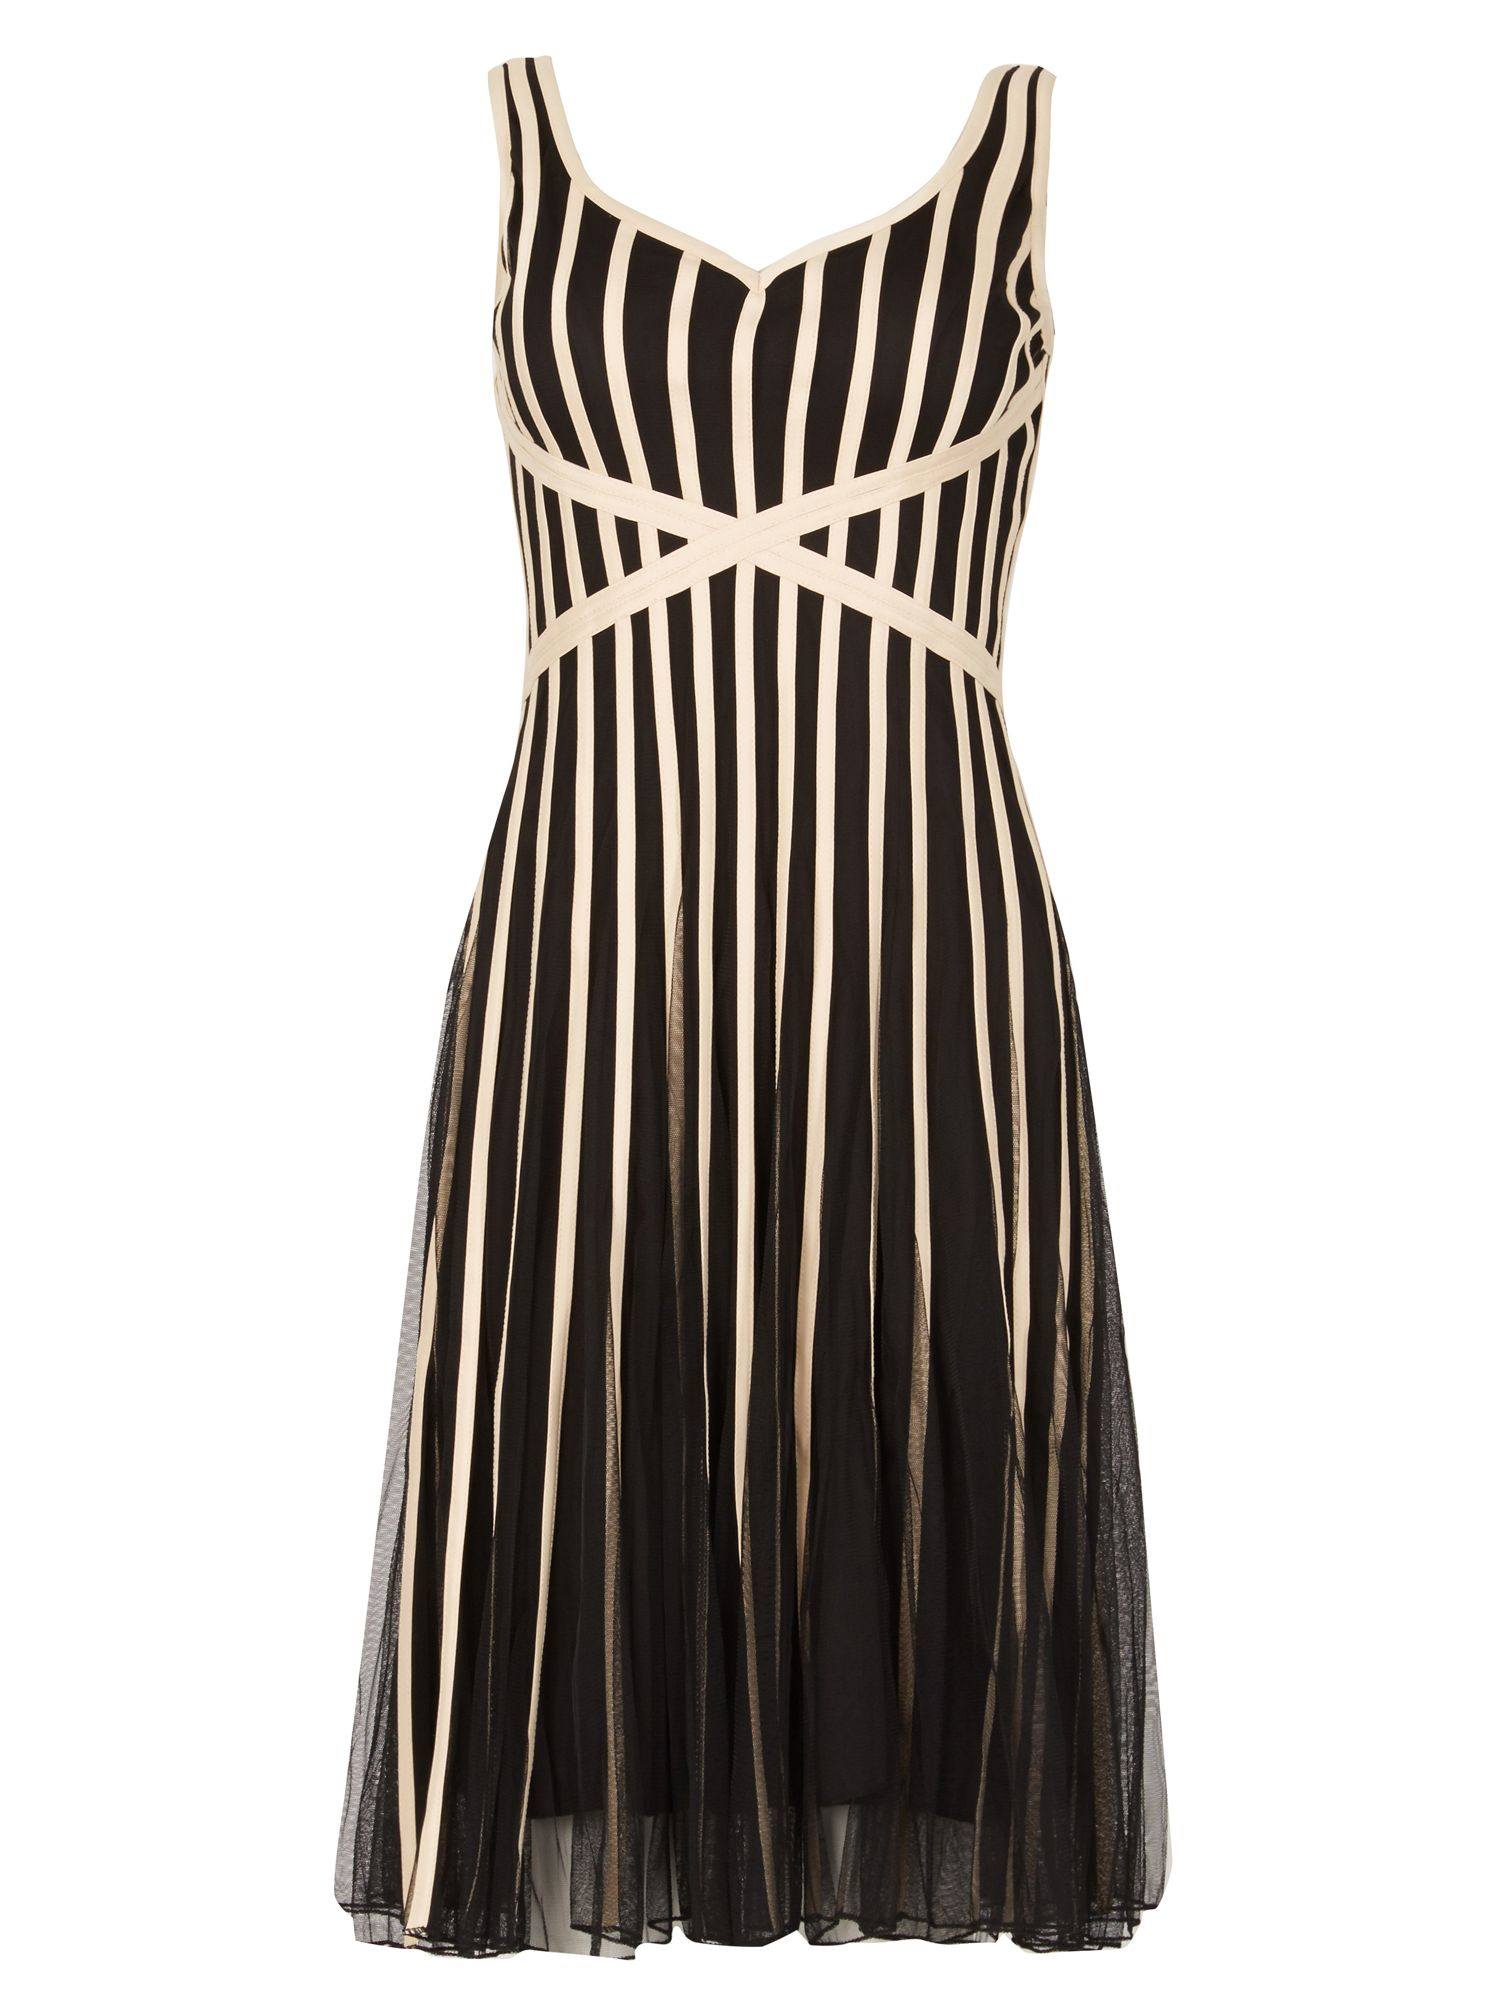 Izabel London Ribbon Float Dress, Black